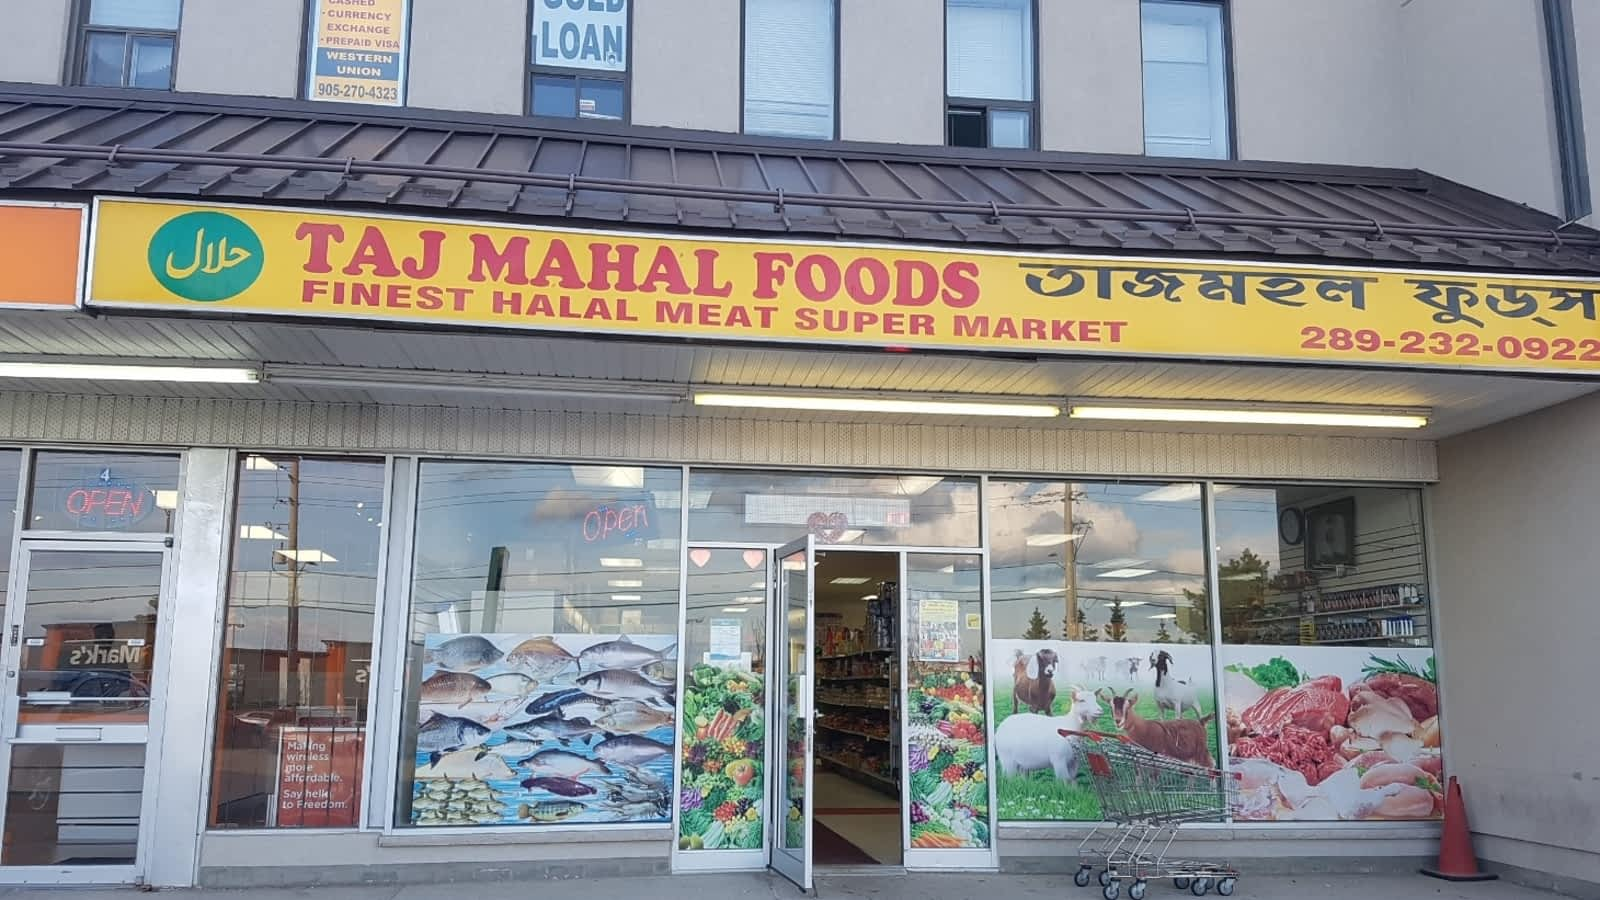 Furniture Stores On Dundas Mississauga Tajmahal Foods Opening Hours 1185 Dundas St E